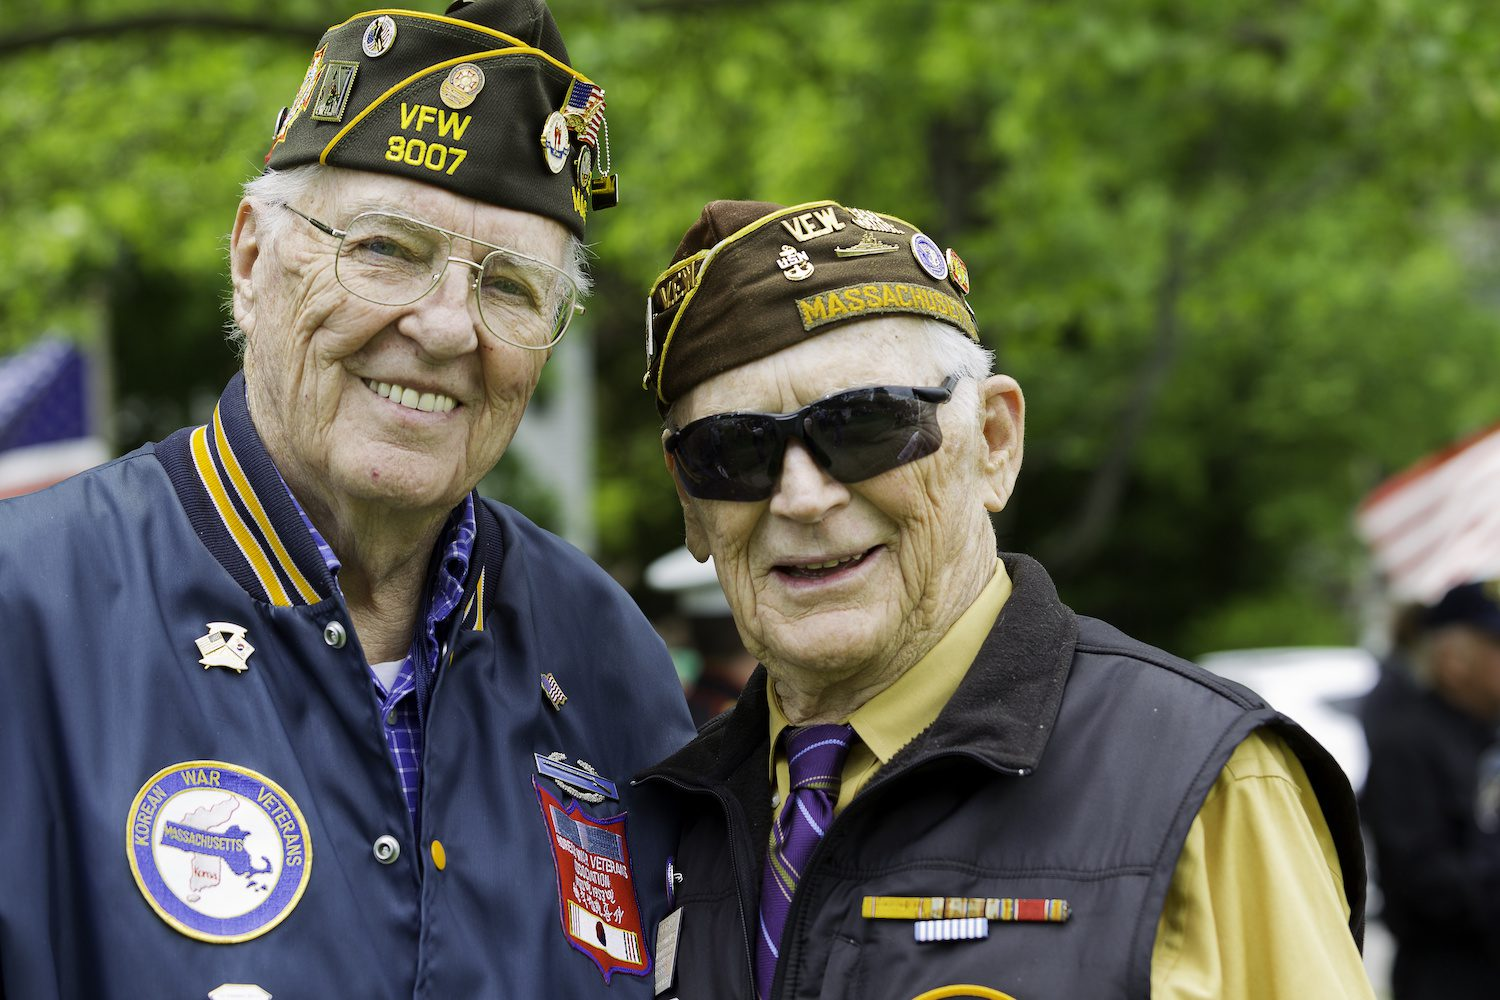 Veterans at Memorial Day service | Clarity Hearing